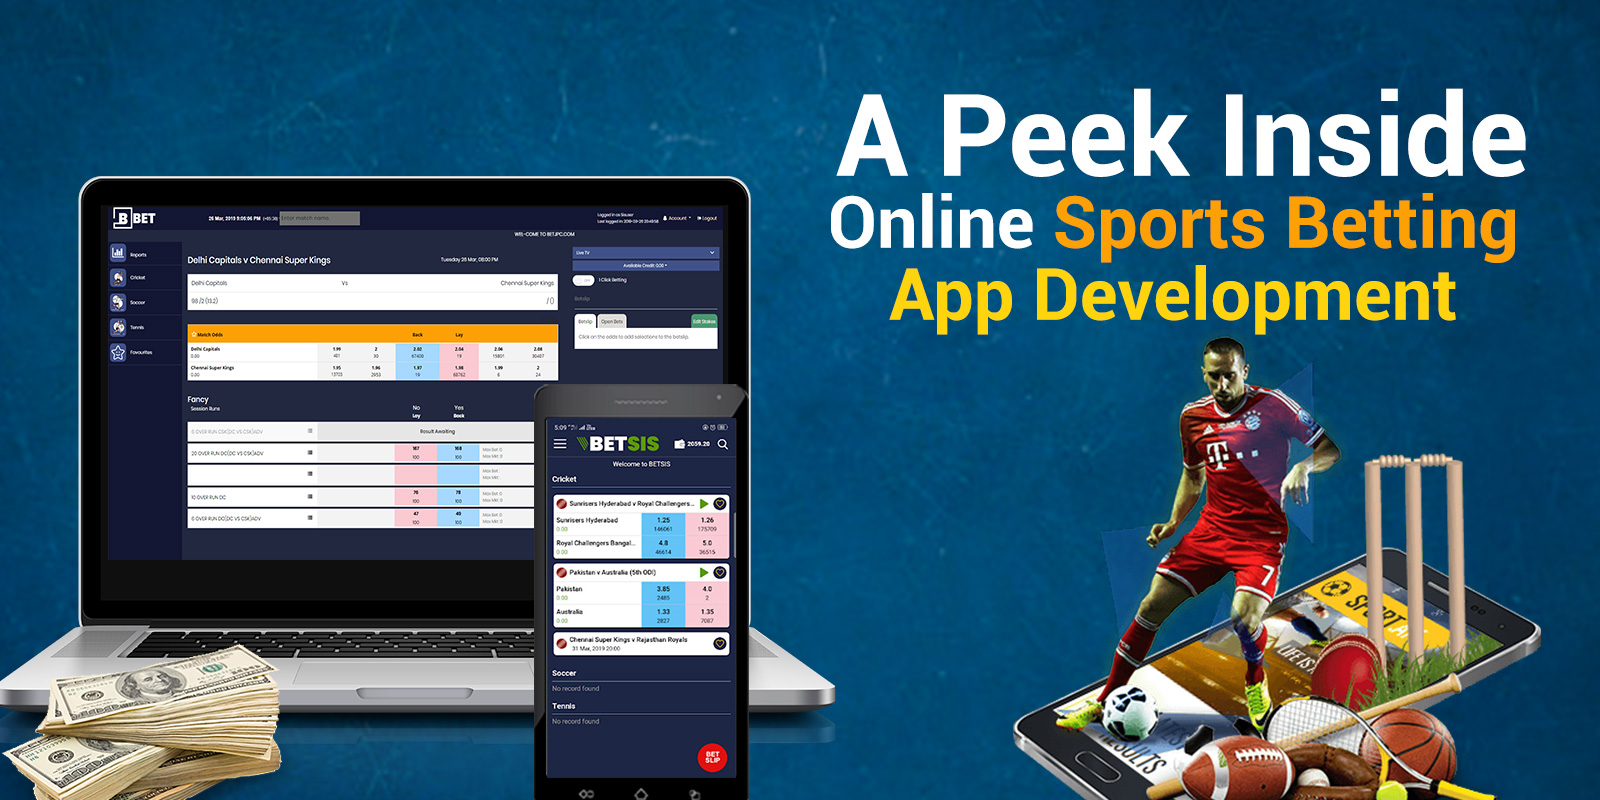 A Peek Inside Online Sports Betting Mobile App Development